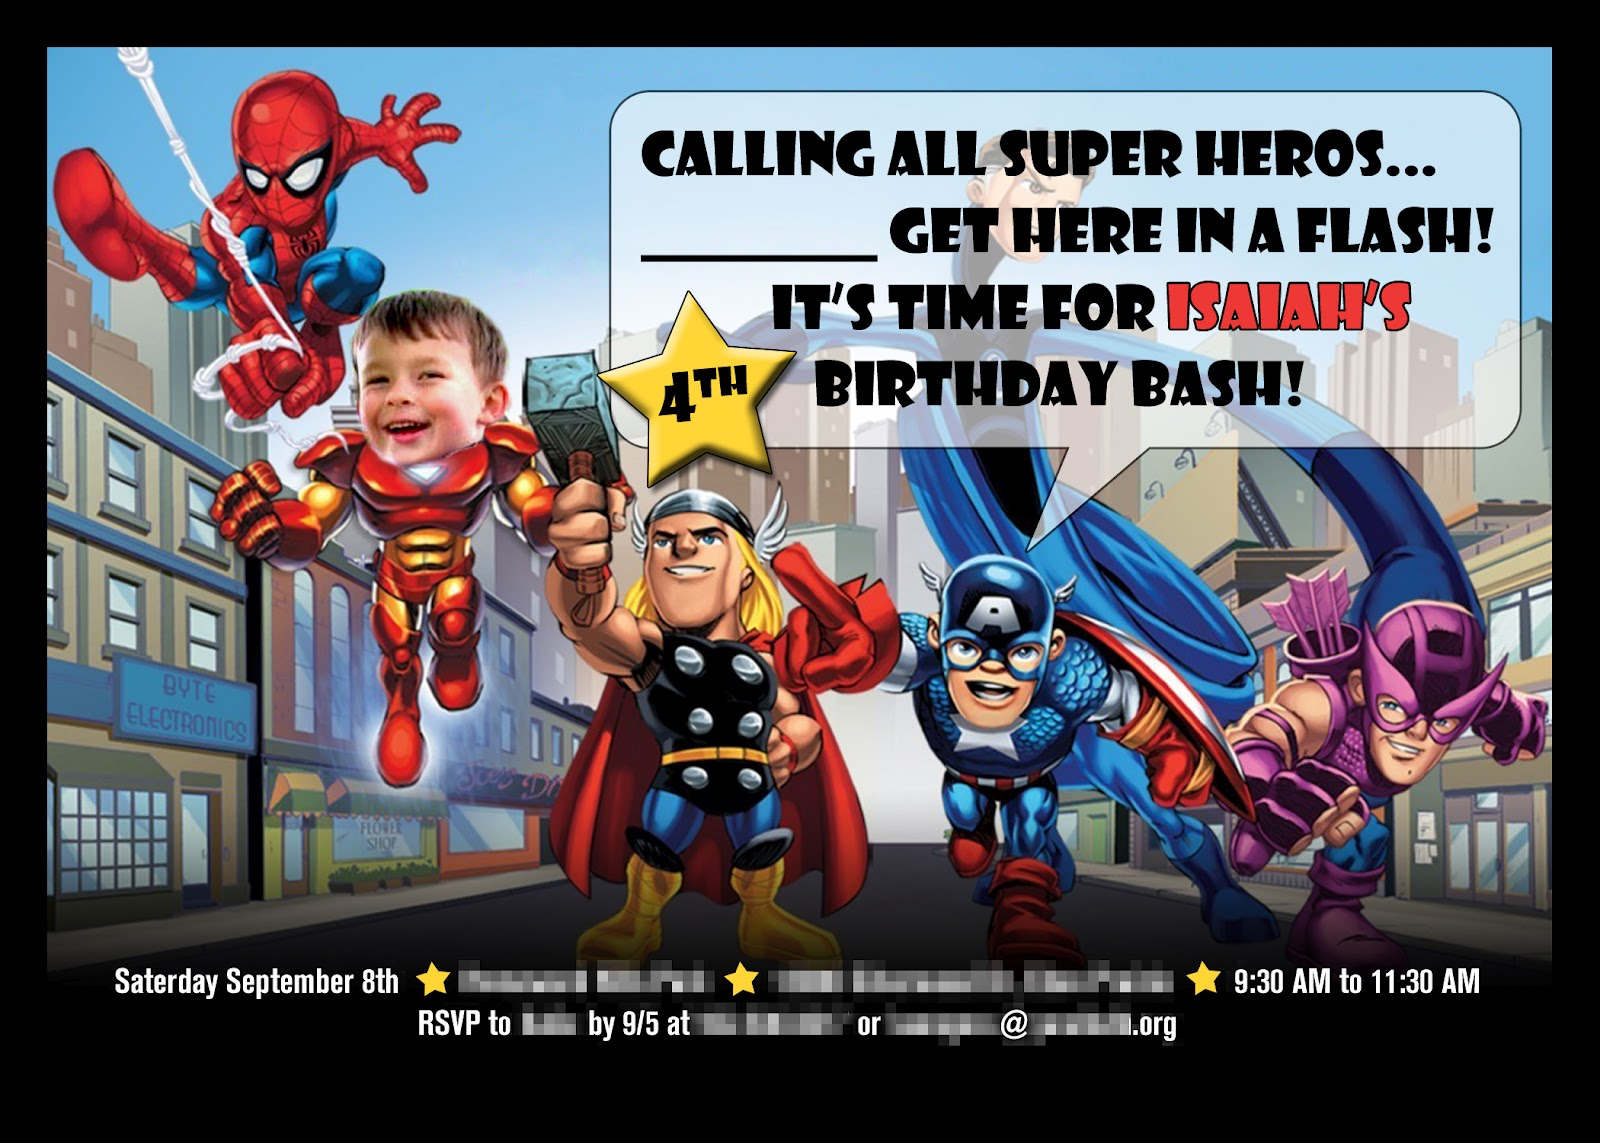 Superhero Birthday Party Ideas, Superhero Birthday Party Invitations